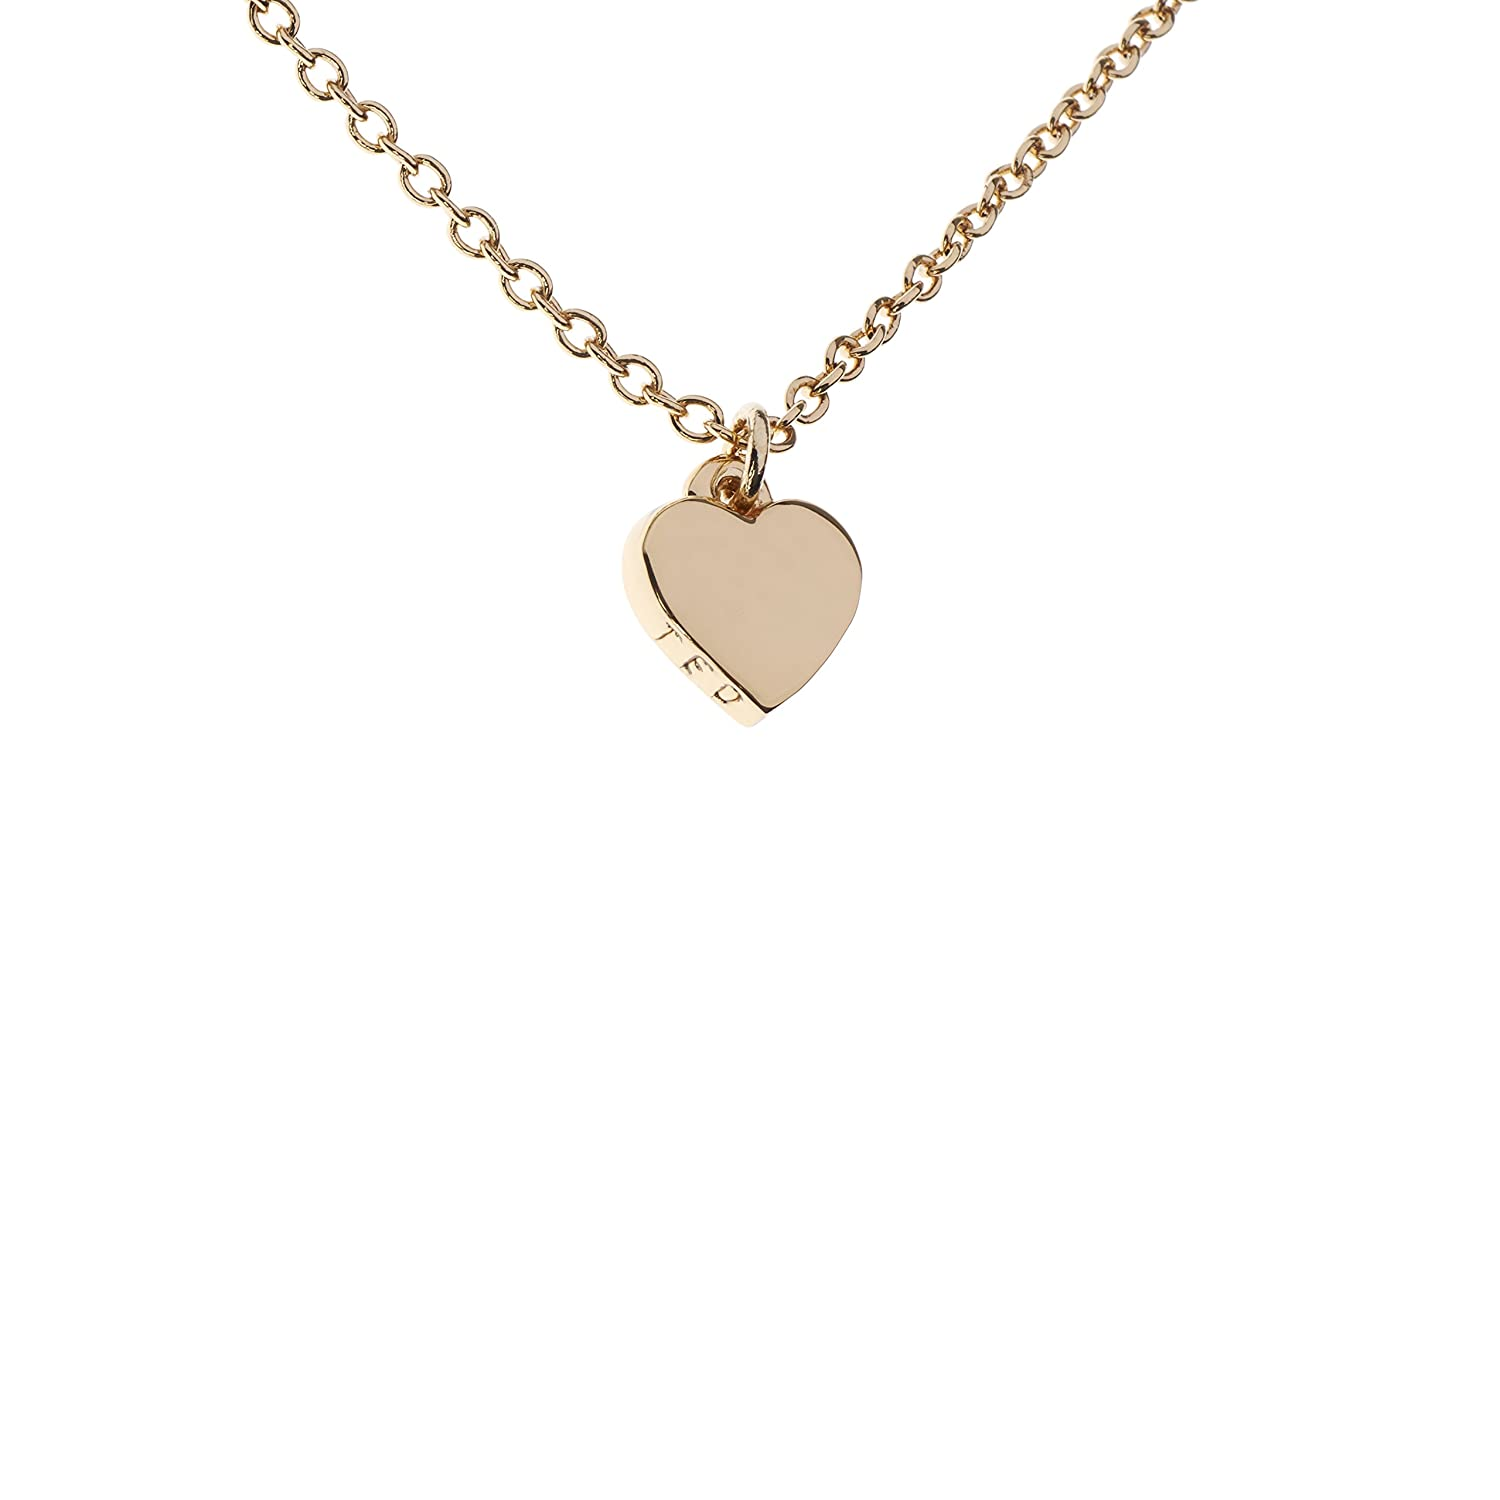 sku us necklace sterling main aemresponsive folded mini silver products fossil heart pdpzoom en